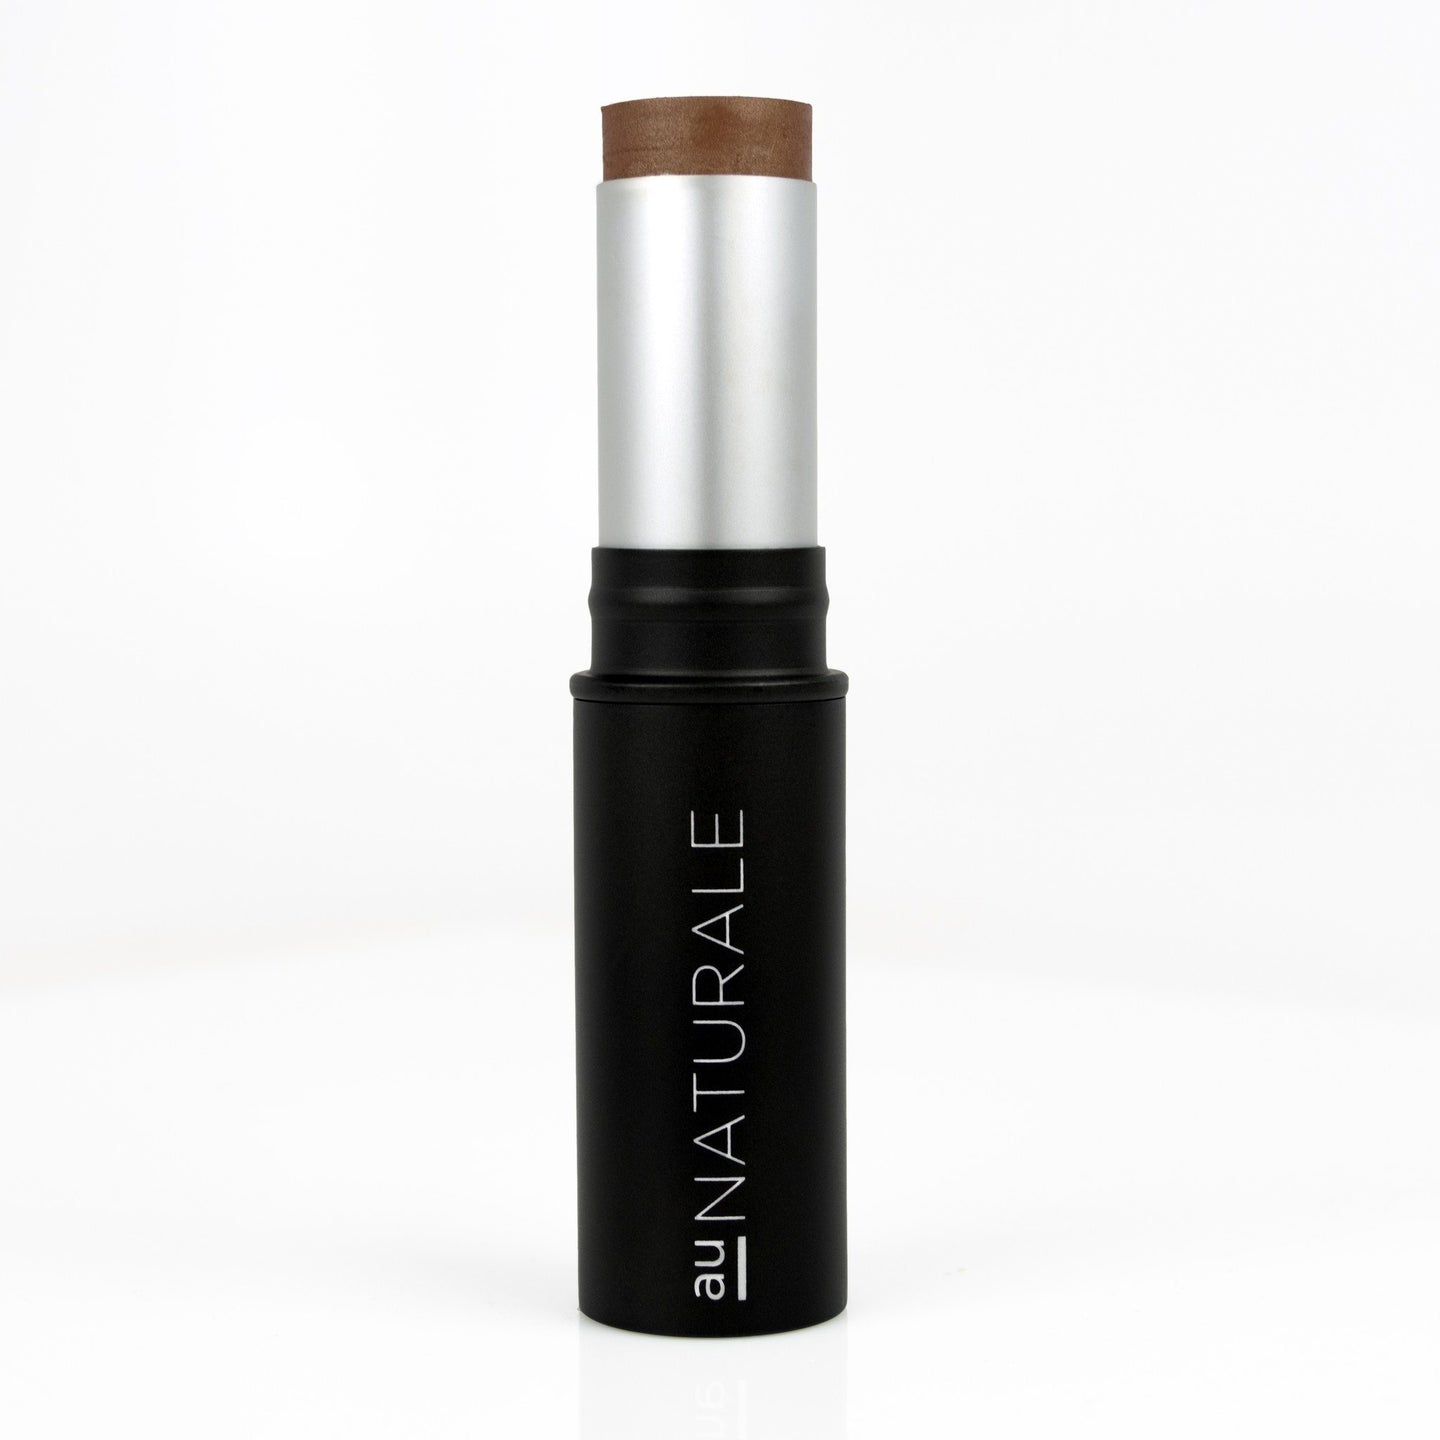 Au Naturale Luminous Creme Bronzer Stick - Switch 2 Pure